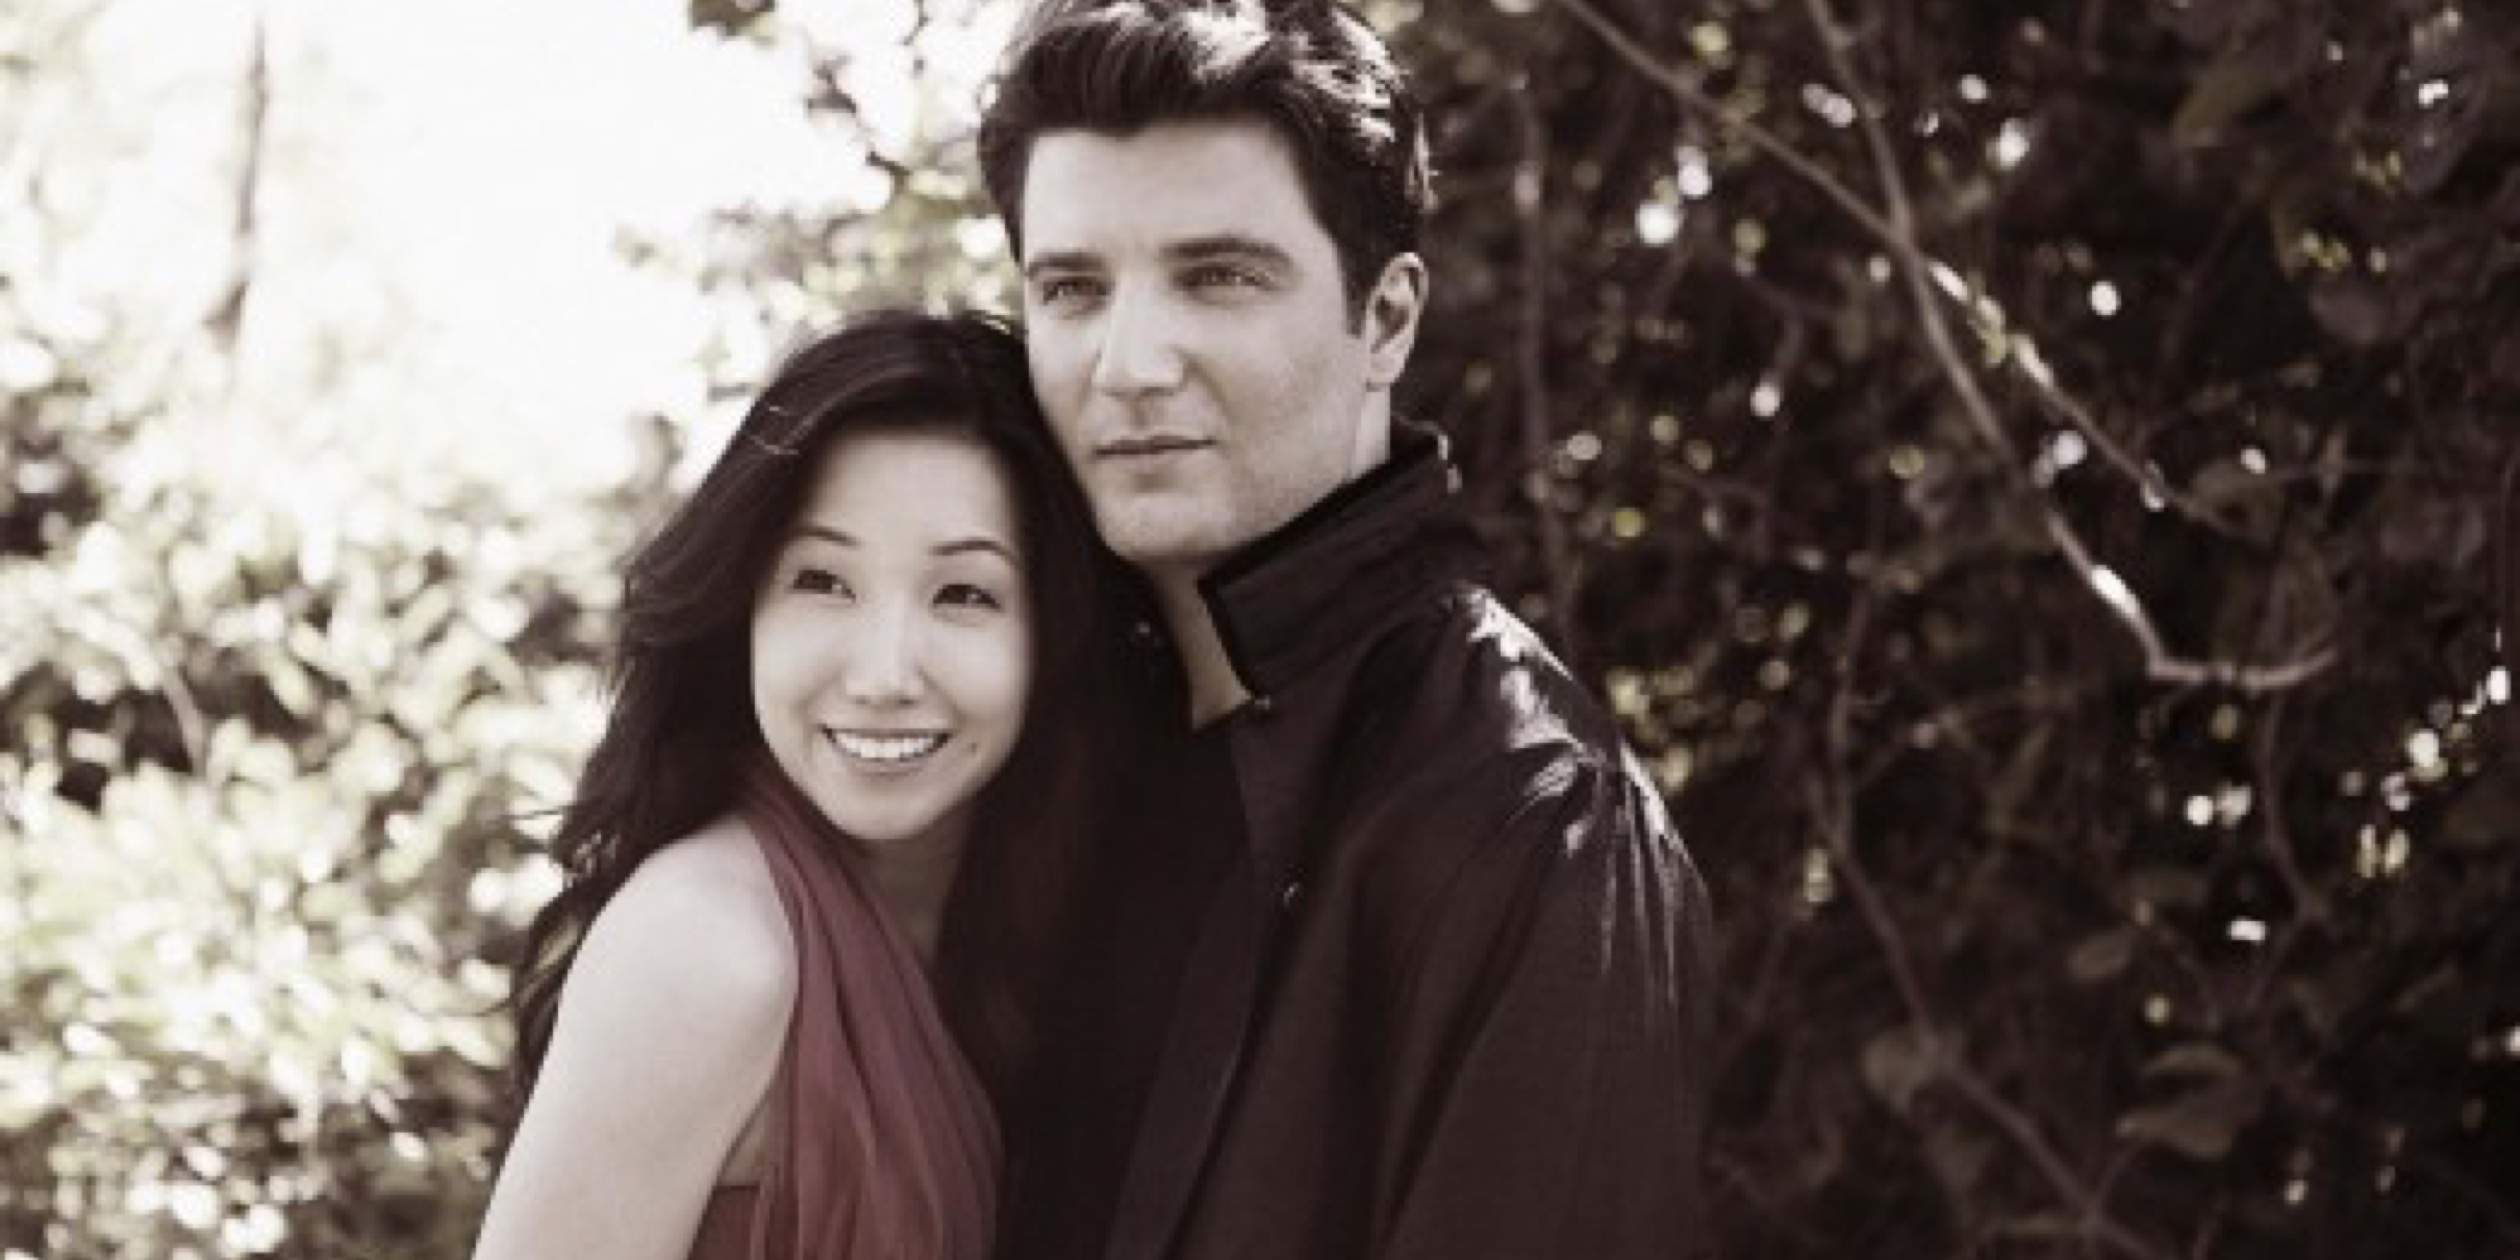 Musical Evening with Alessio Bax & Lucille Chung, April 12, 2018